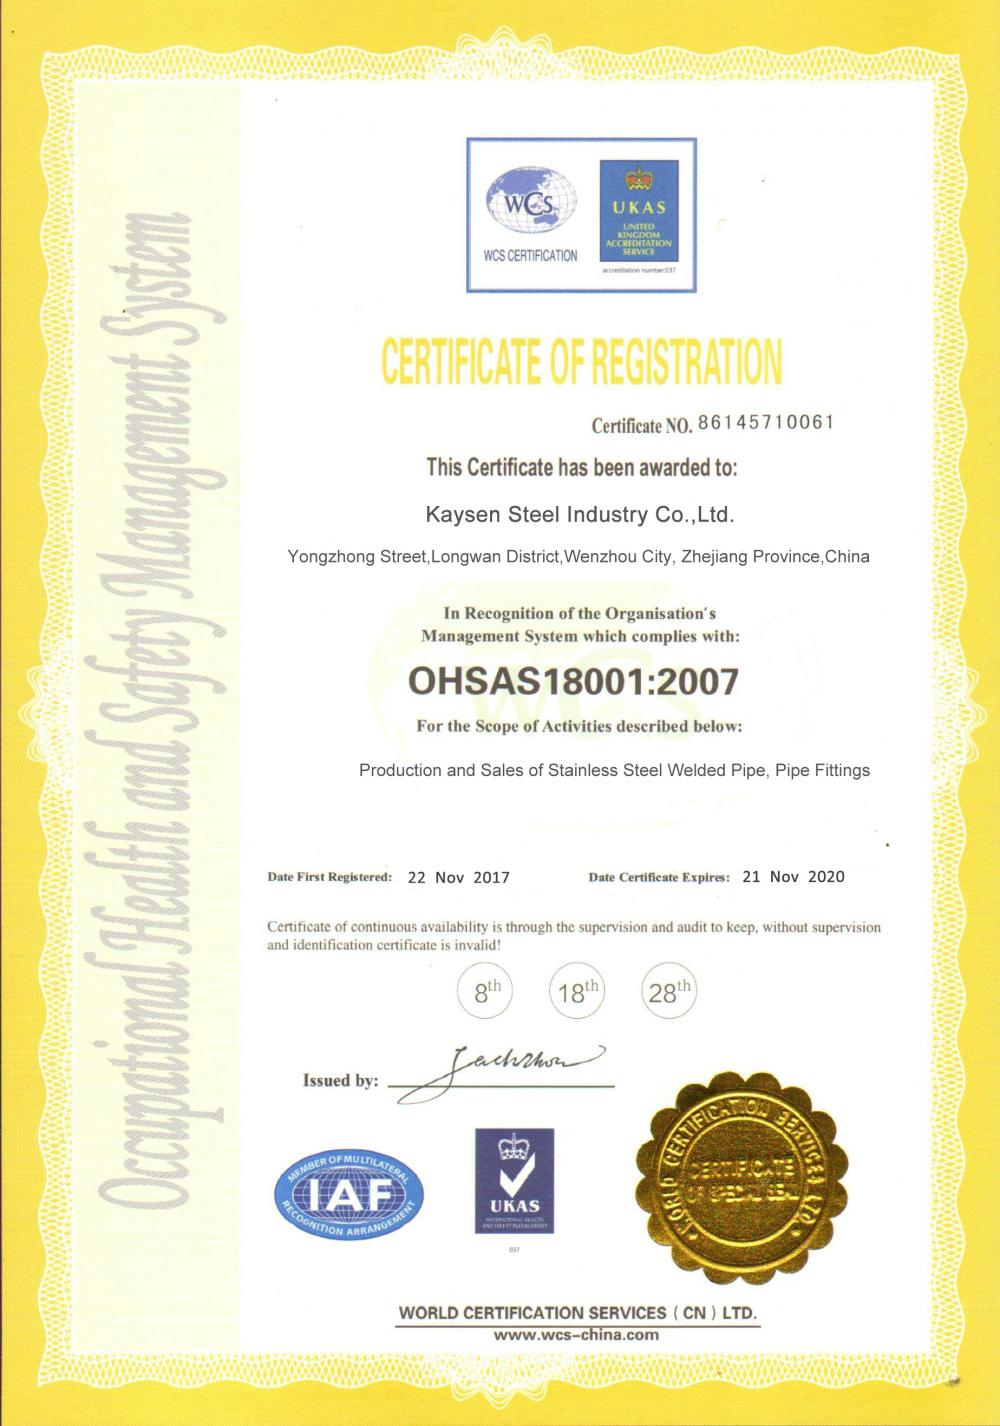 OHSAS/OHSMS 18001